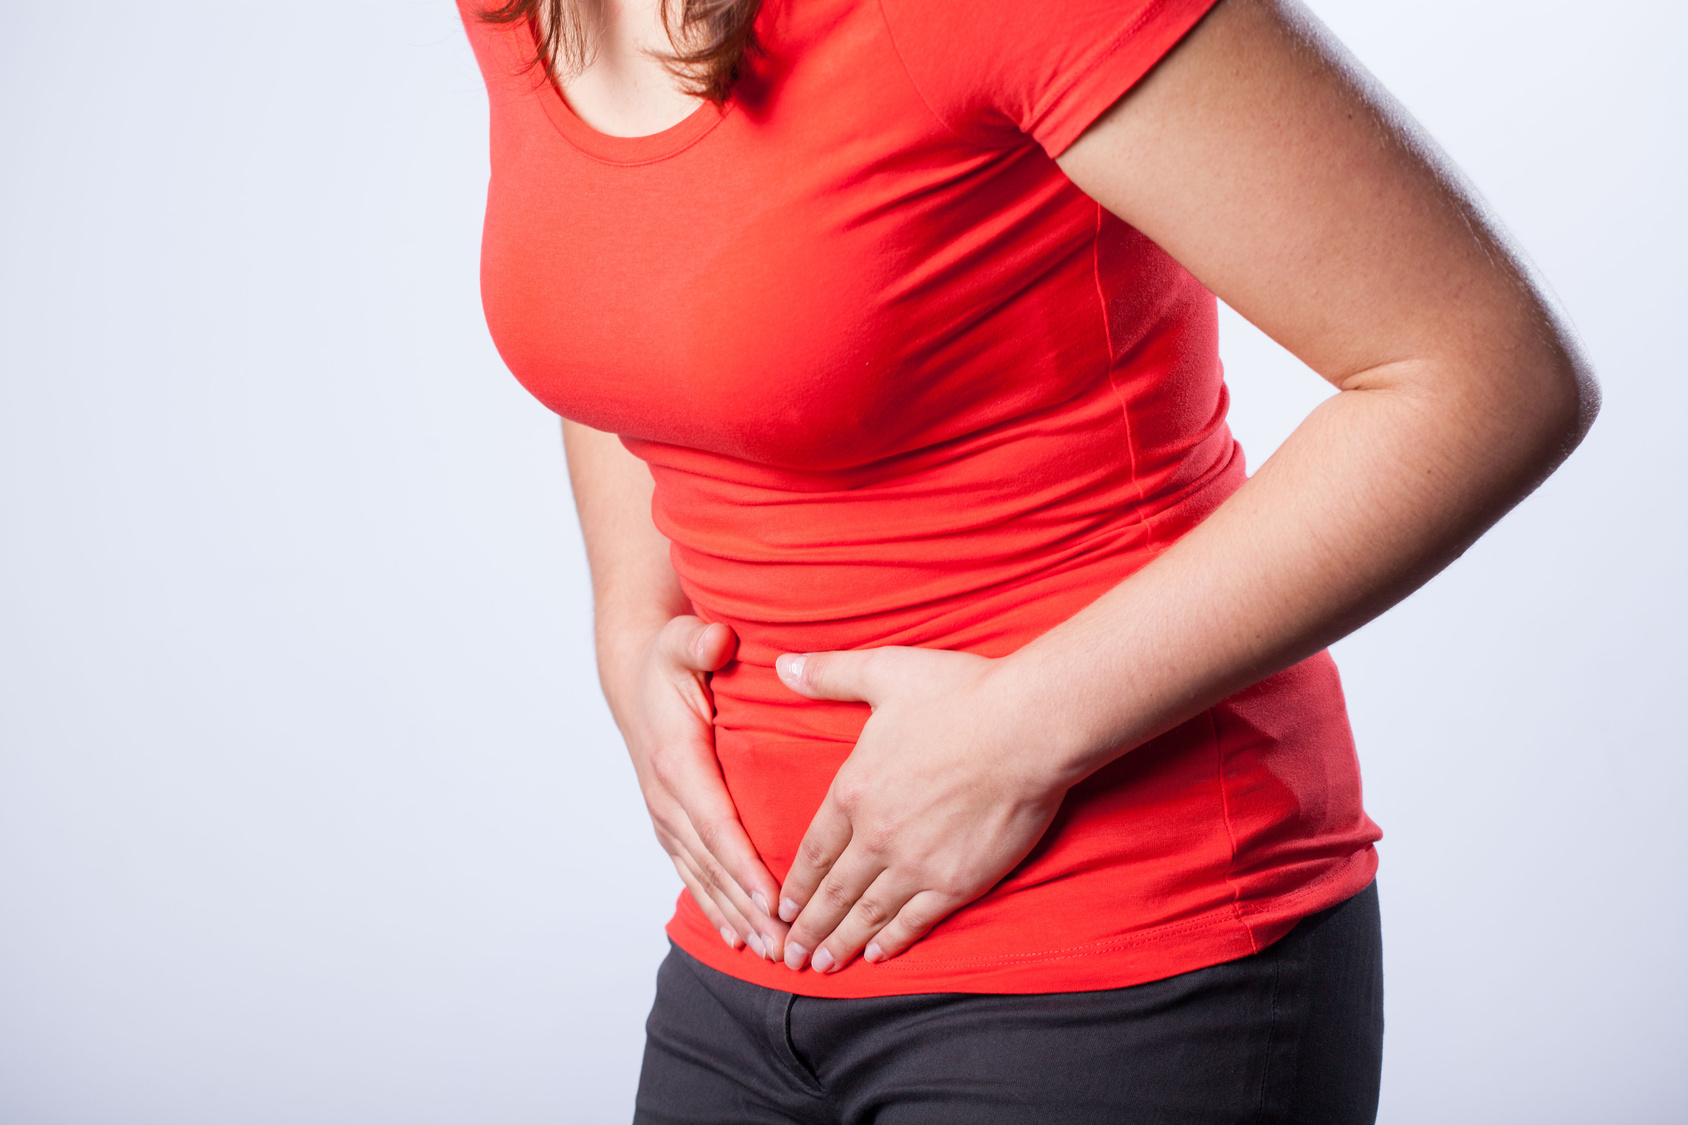 Pain in lower abdomen during periods